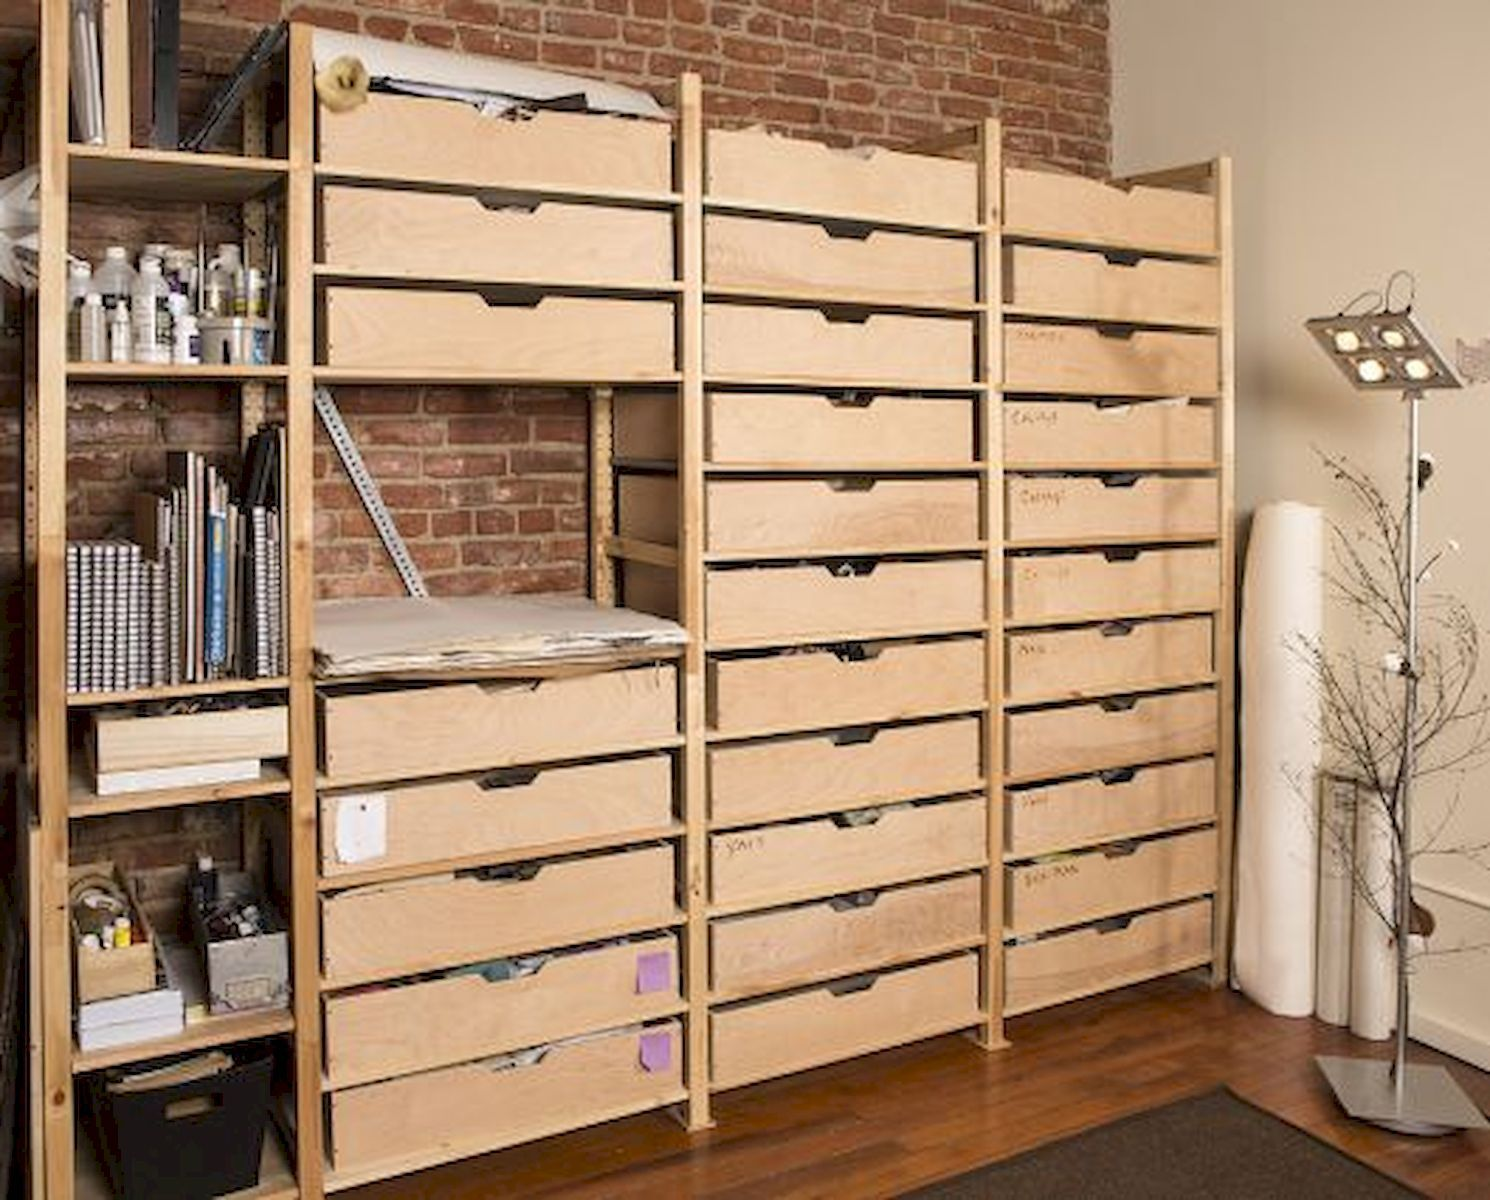 Storage Solutions For Craft Rooms: 70 Favorite Craft Room Storage Solution